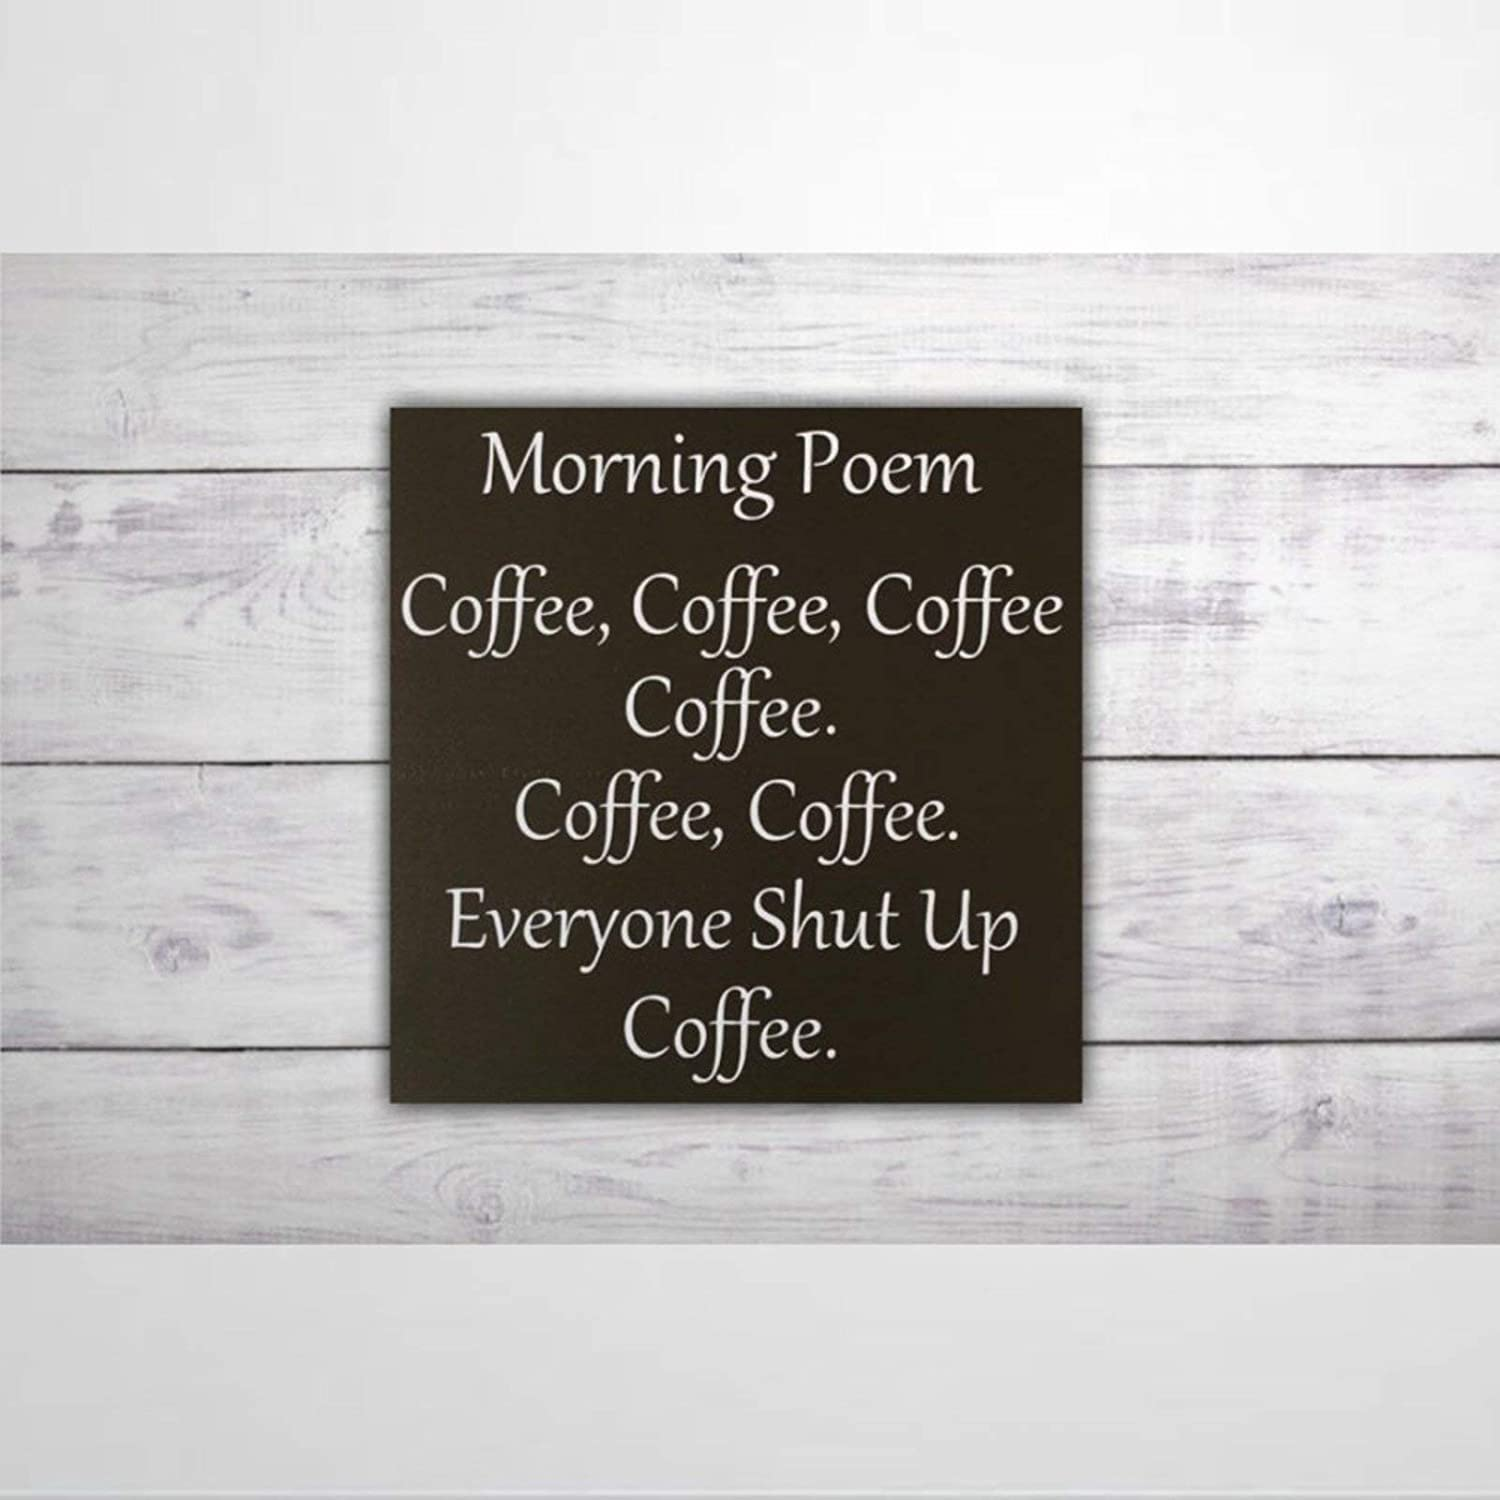 BYRON HOYLE Morning Coffee Poem Wood Sign,Wooden Wall Hanging Art,Inspirational Farmhouse Wall Plaque,Rustic Home Decor for Living Room,Nursery,Bedroom,Porch,Gallery Wall